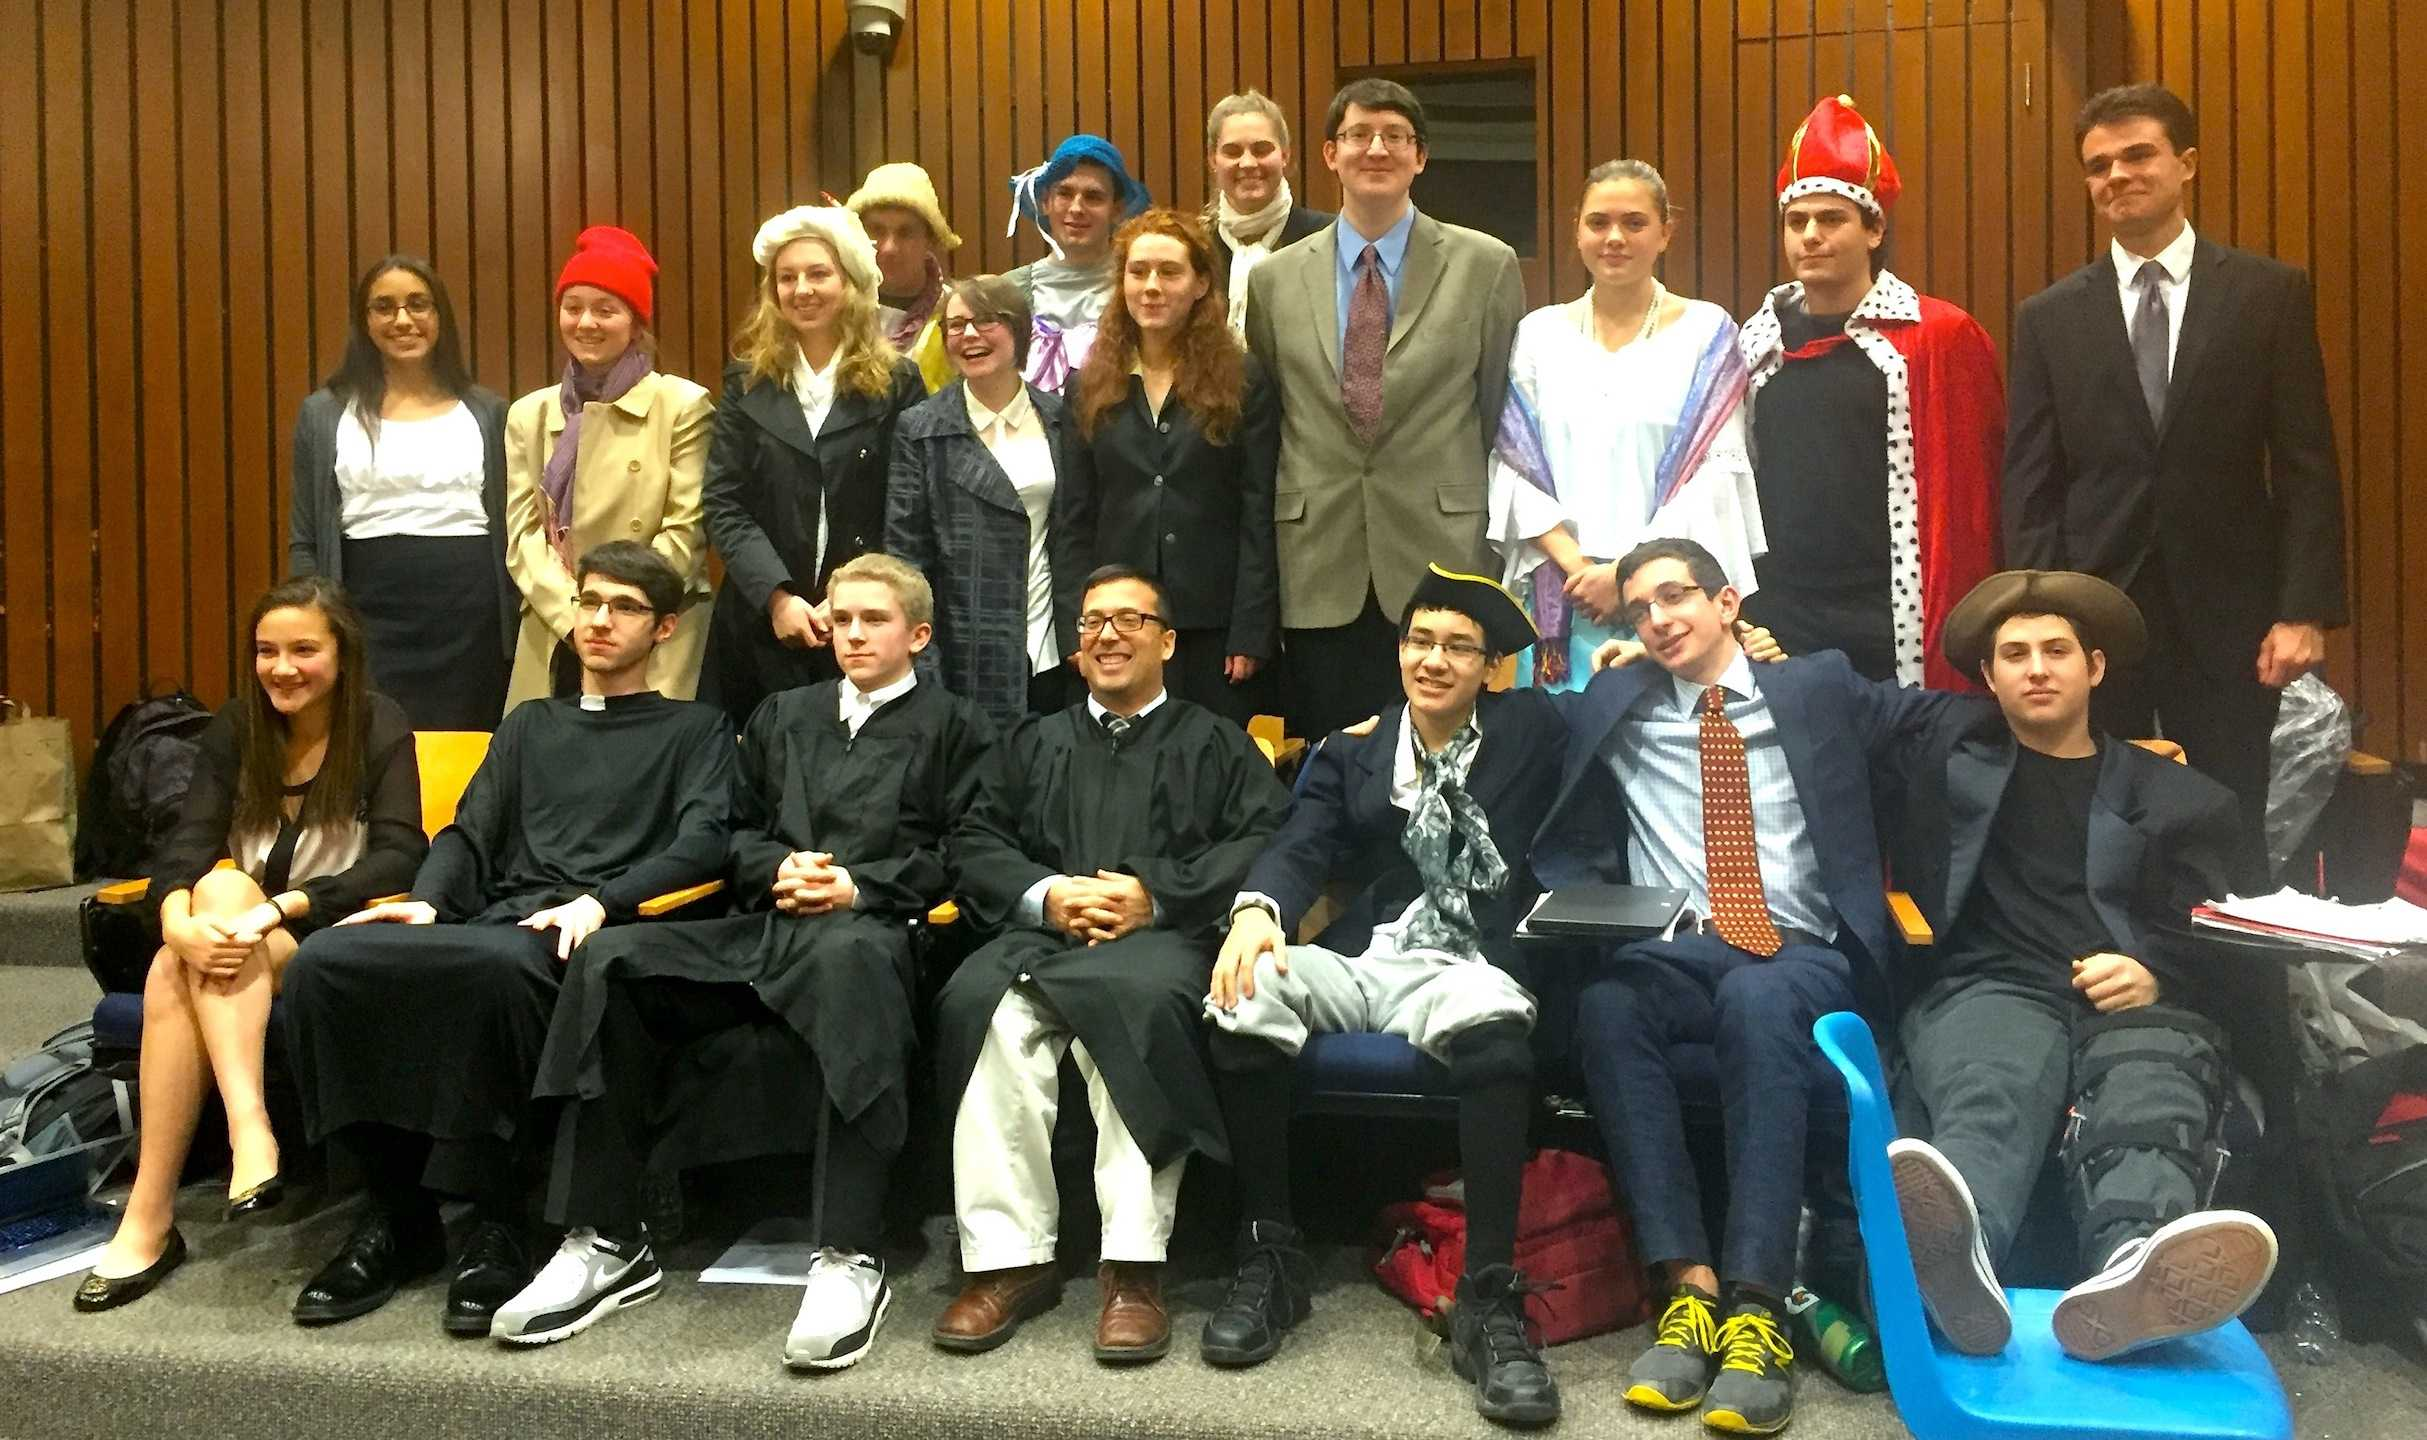 Participants in the annual French Revolution trial put differences aside to pose with Judge Mastro (front row, center) for a group picture in the Watertown High School lecture hall on Jan. 21, 2016.